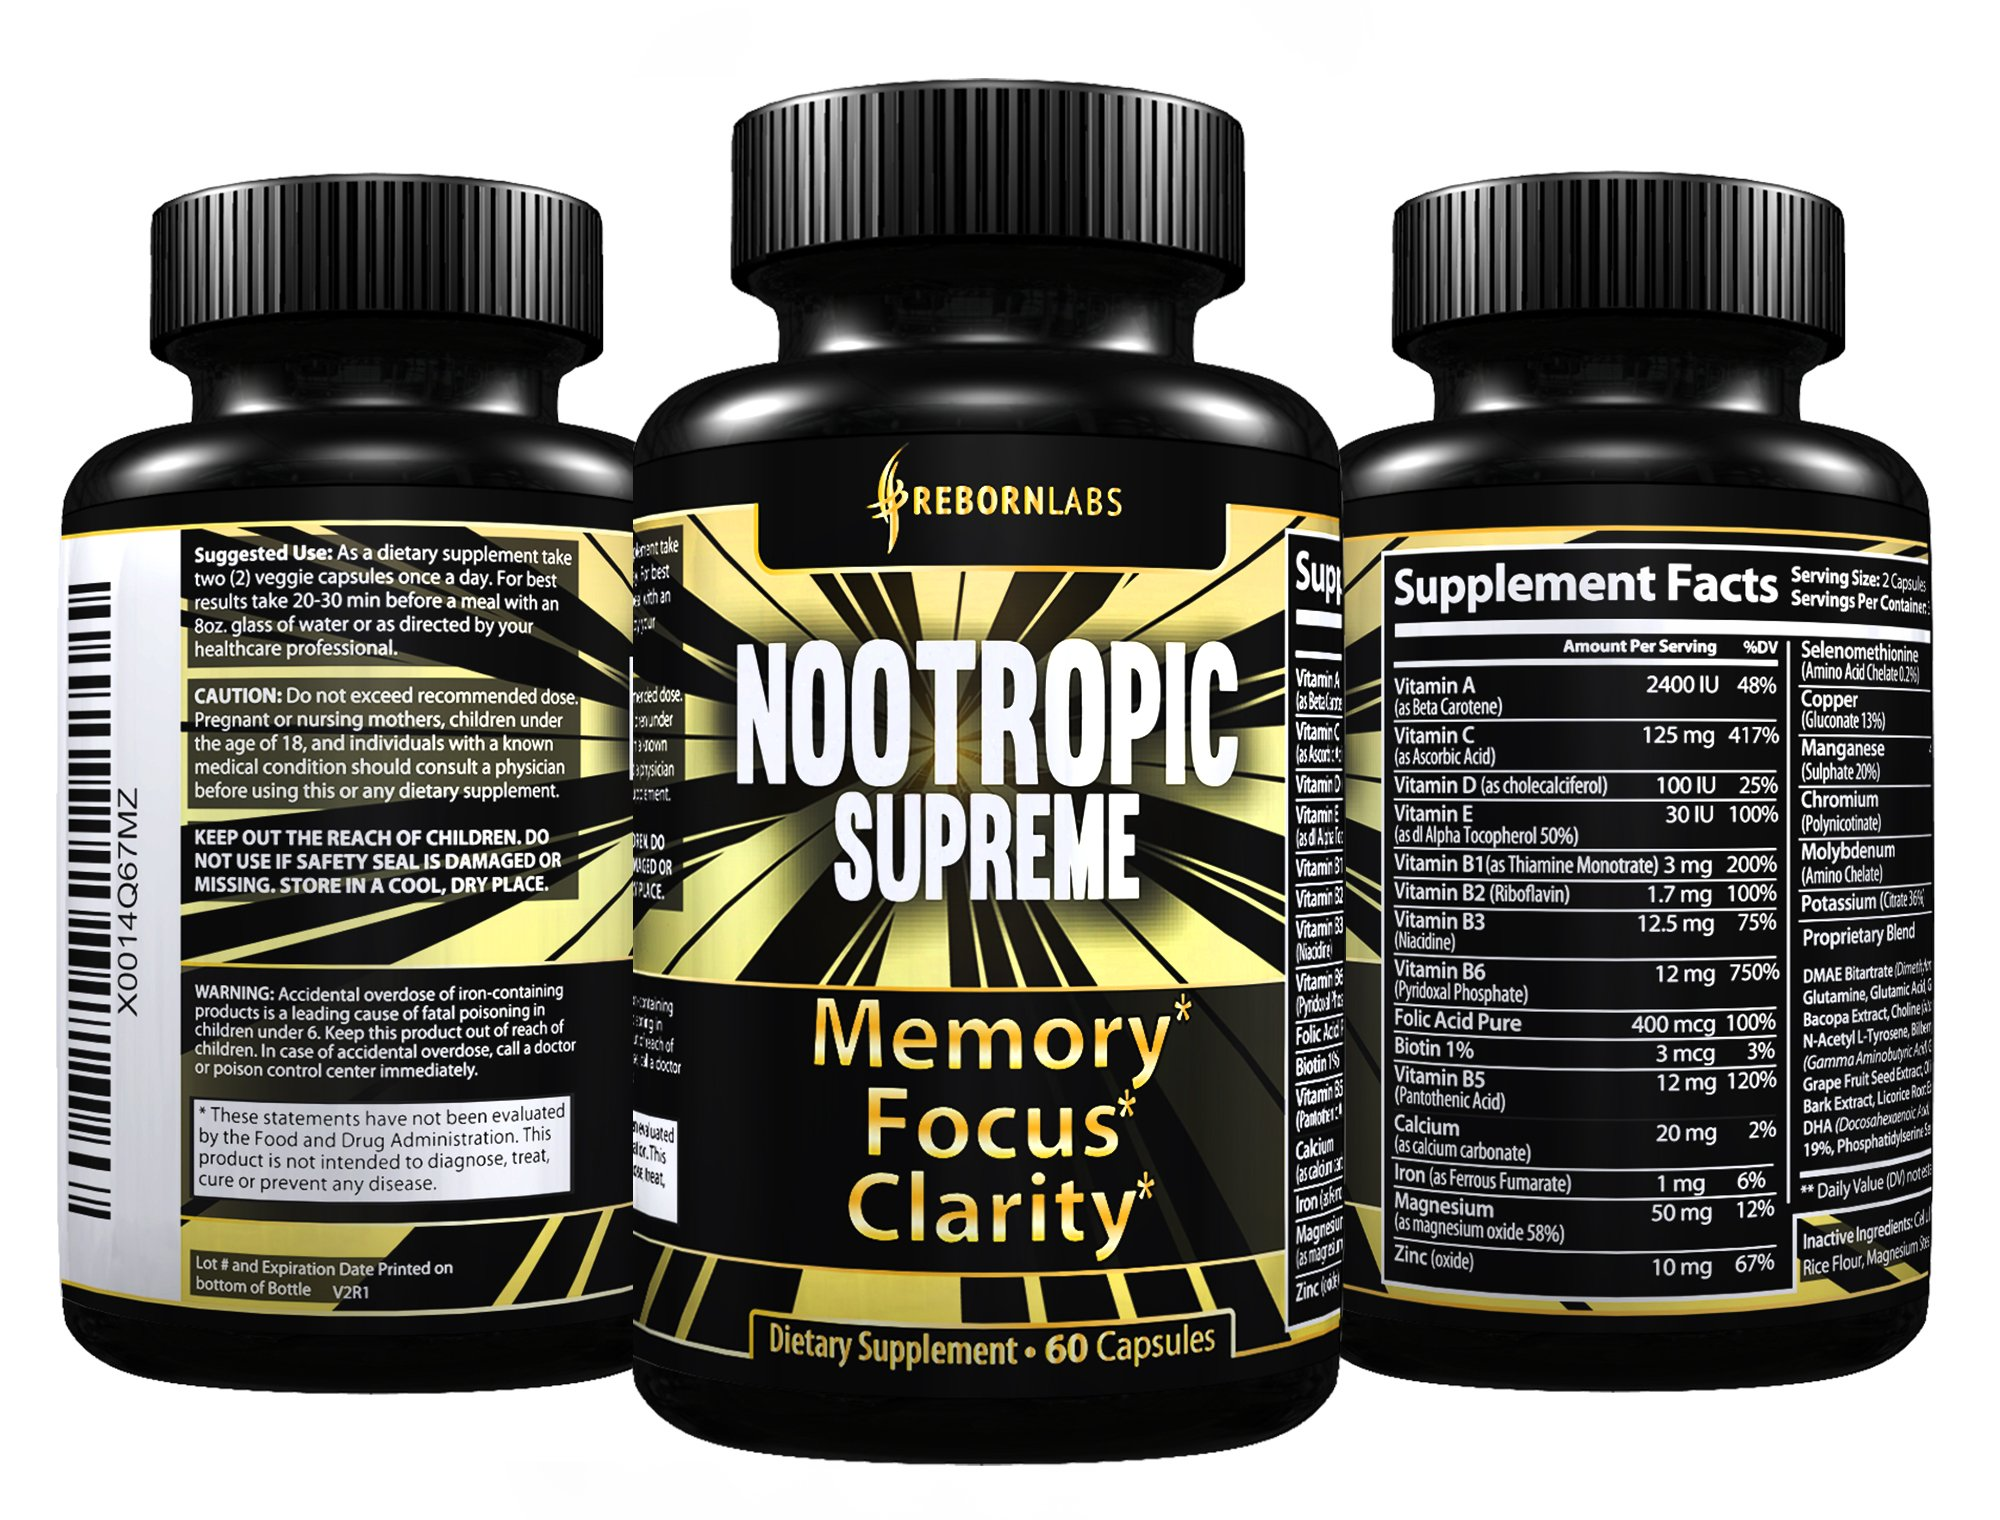 Ultra Strength Mental Performance Supplement for Memory, Focus, & Clarity   With 40+ Natural Brain Boosters for Faster, Noticeable Results   Advanced Nootropic Complex Helps Brain Function